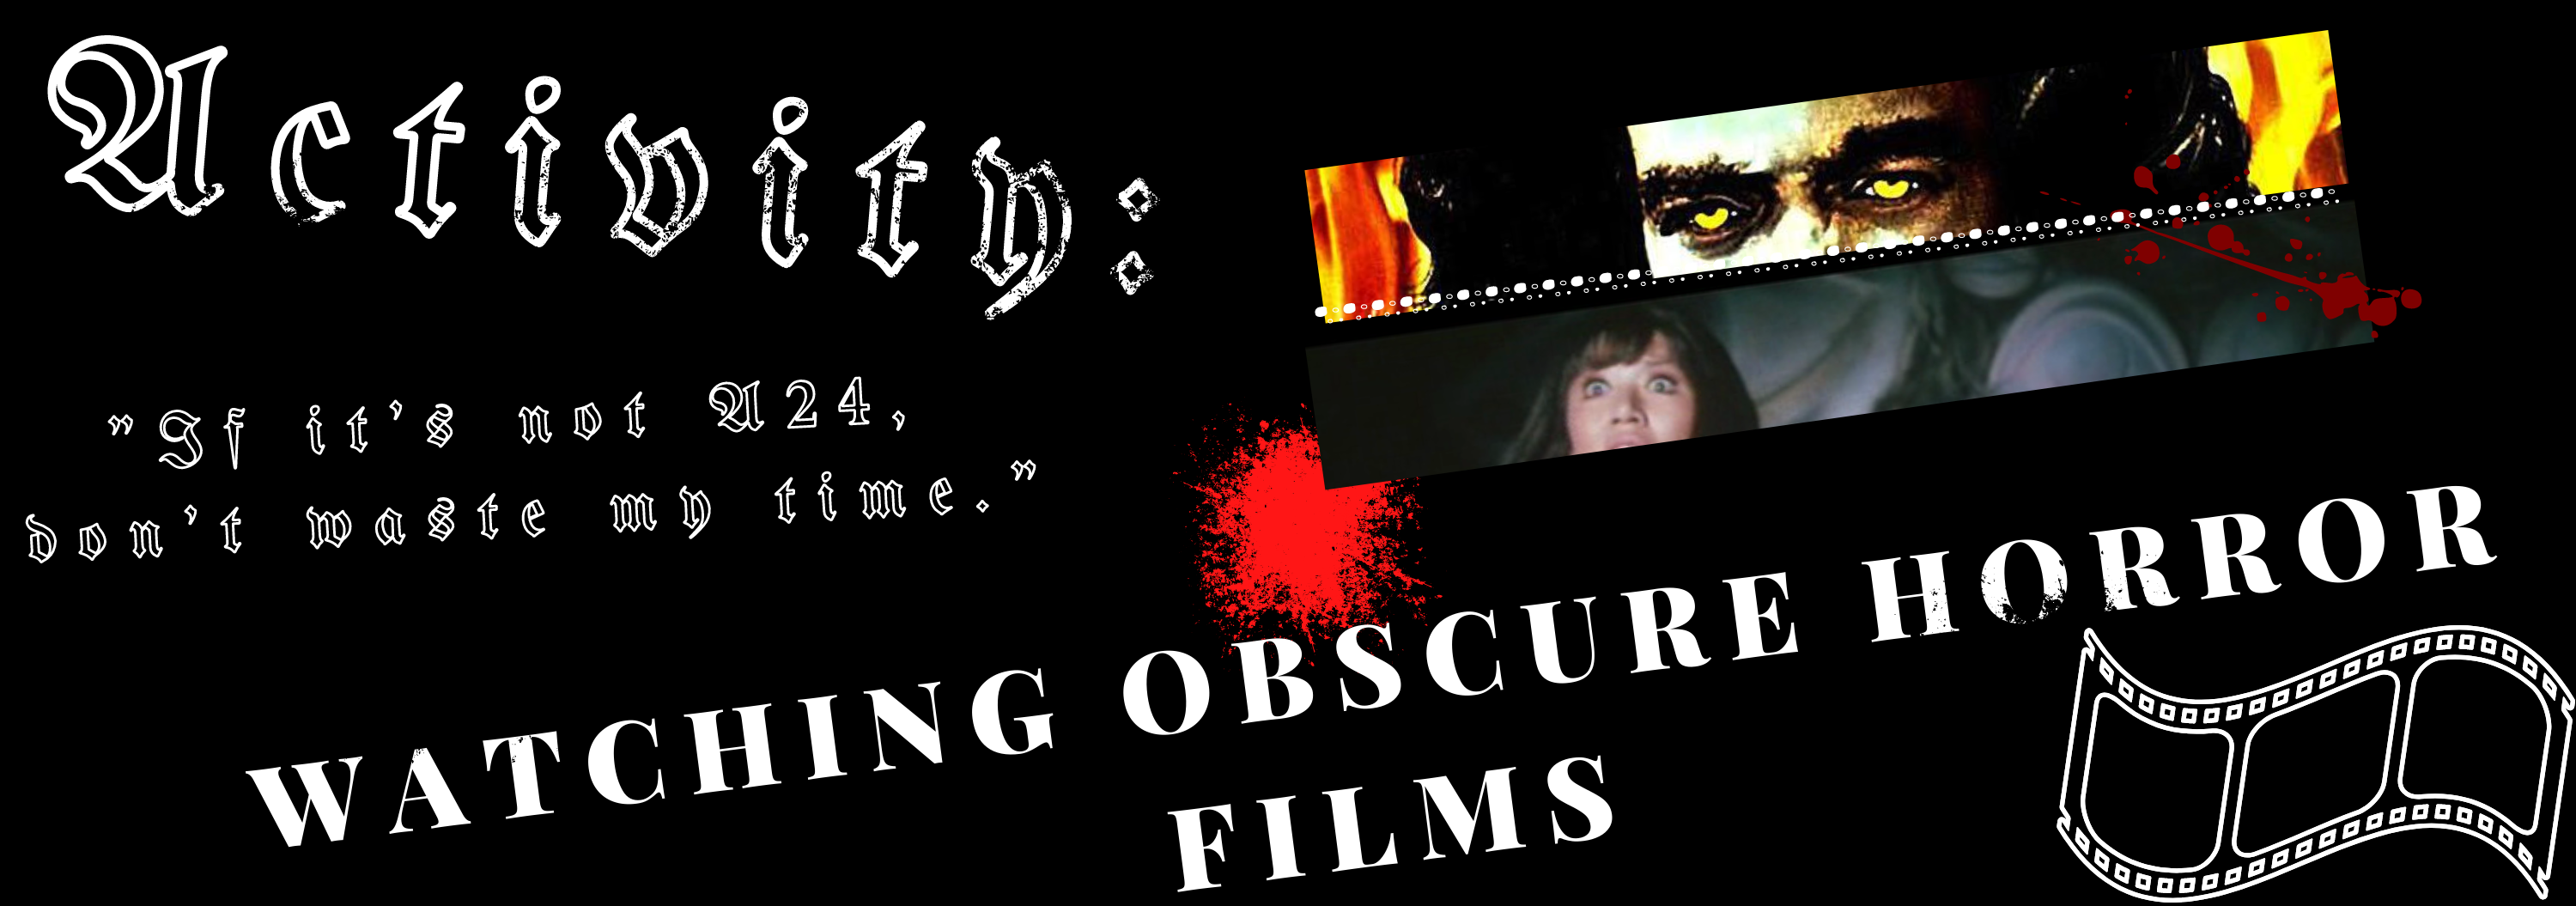 "A black, white, red, and yellow graphic that says Activity, Watching Obscure Horror Films, and ""If it's not A24, don't waste my time"", featuring screenshots from two films: Abby and Blind Beast."